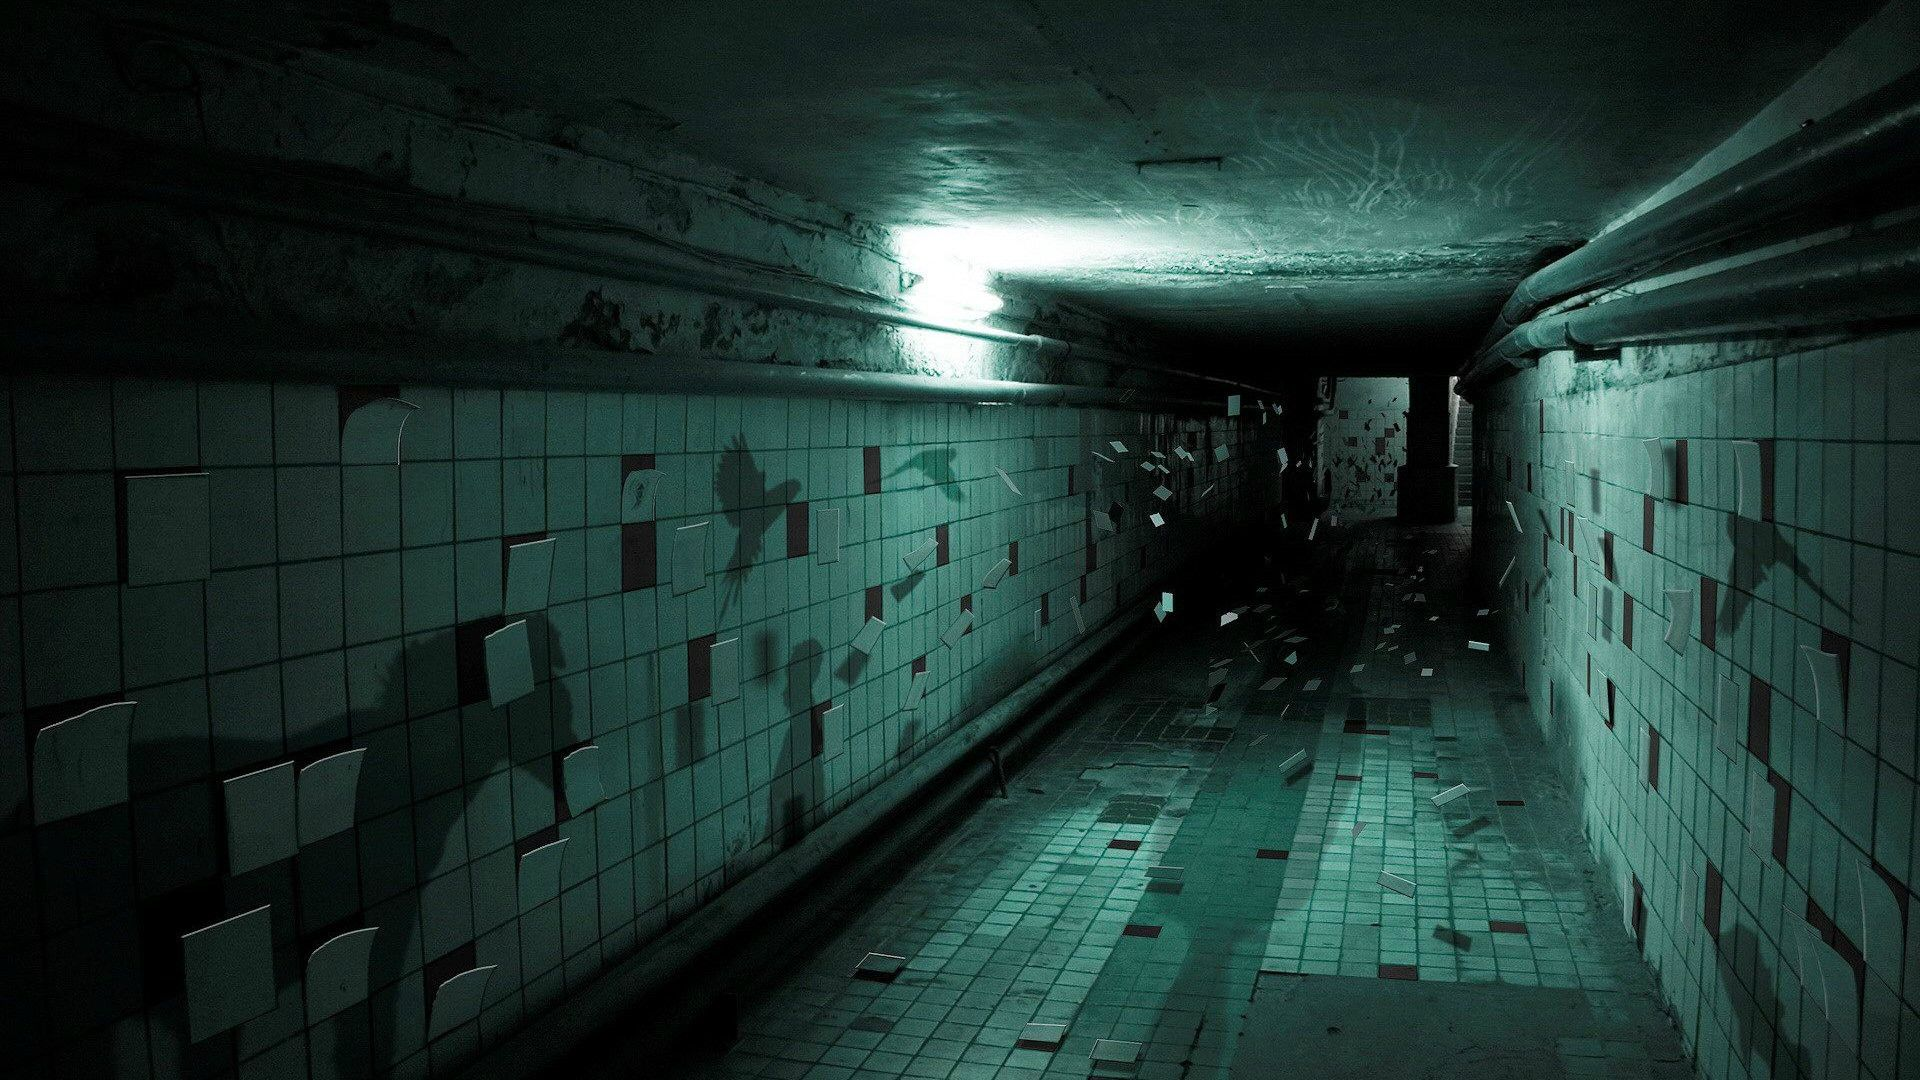 575 Wallpapers All 1080p No Watermarks Scary Wallpaper Scary Backgrounds Creepy Backgrounds